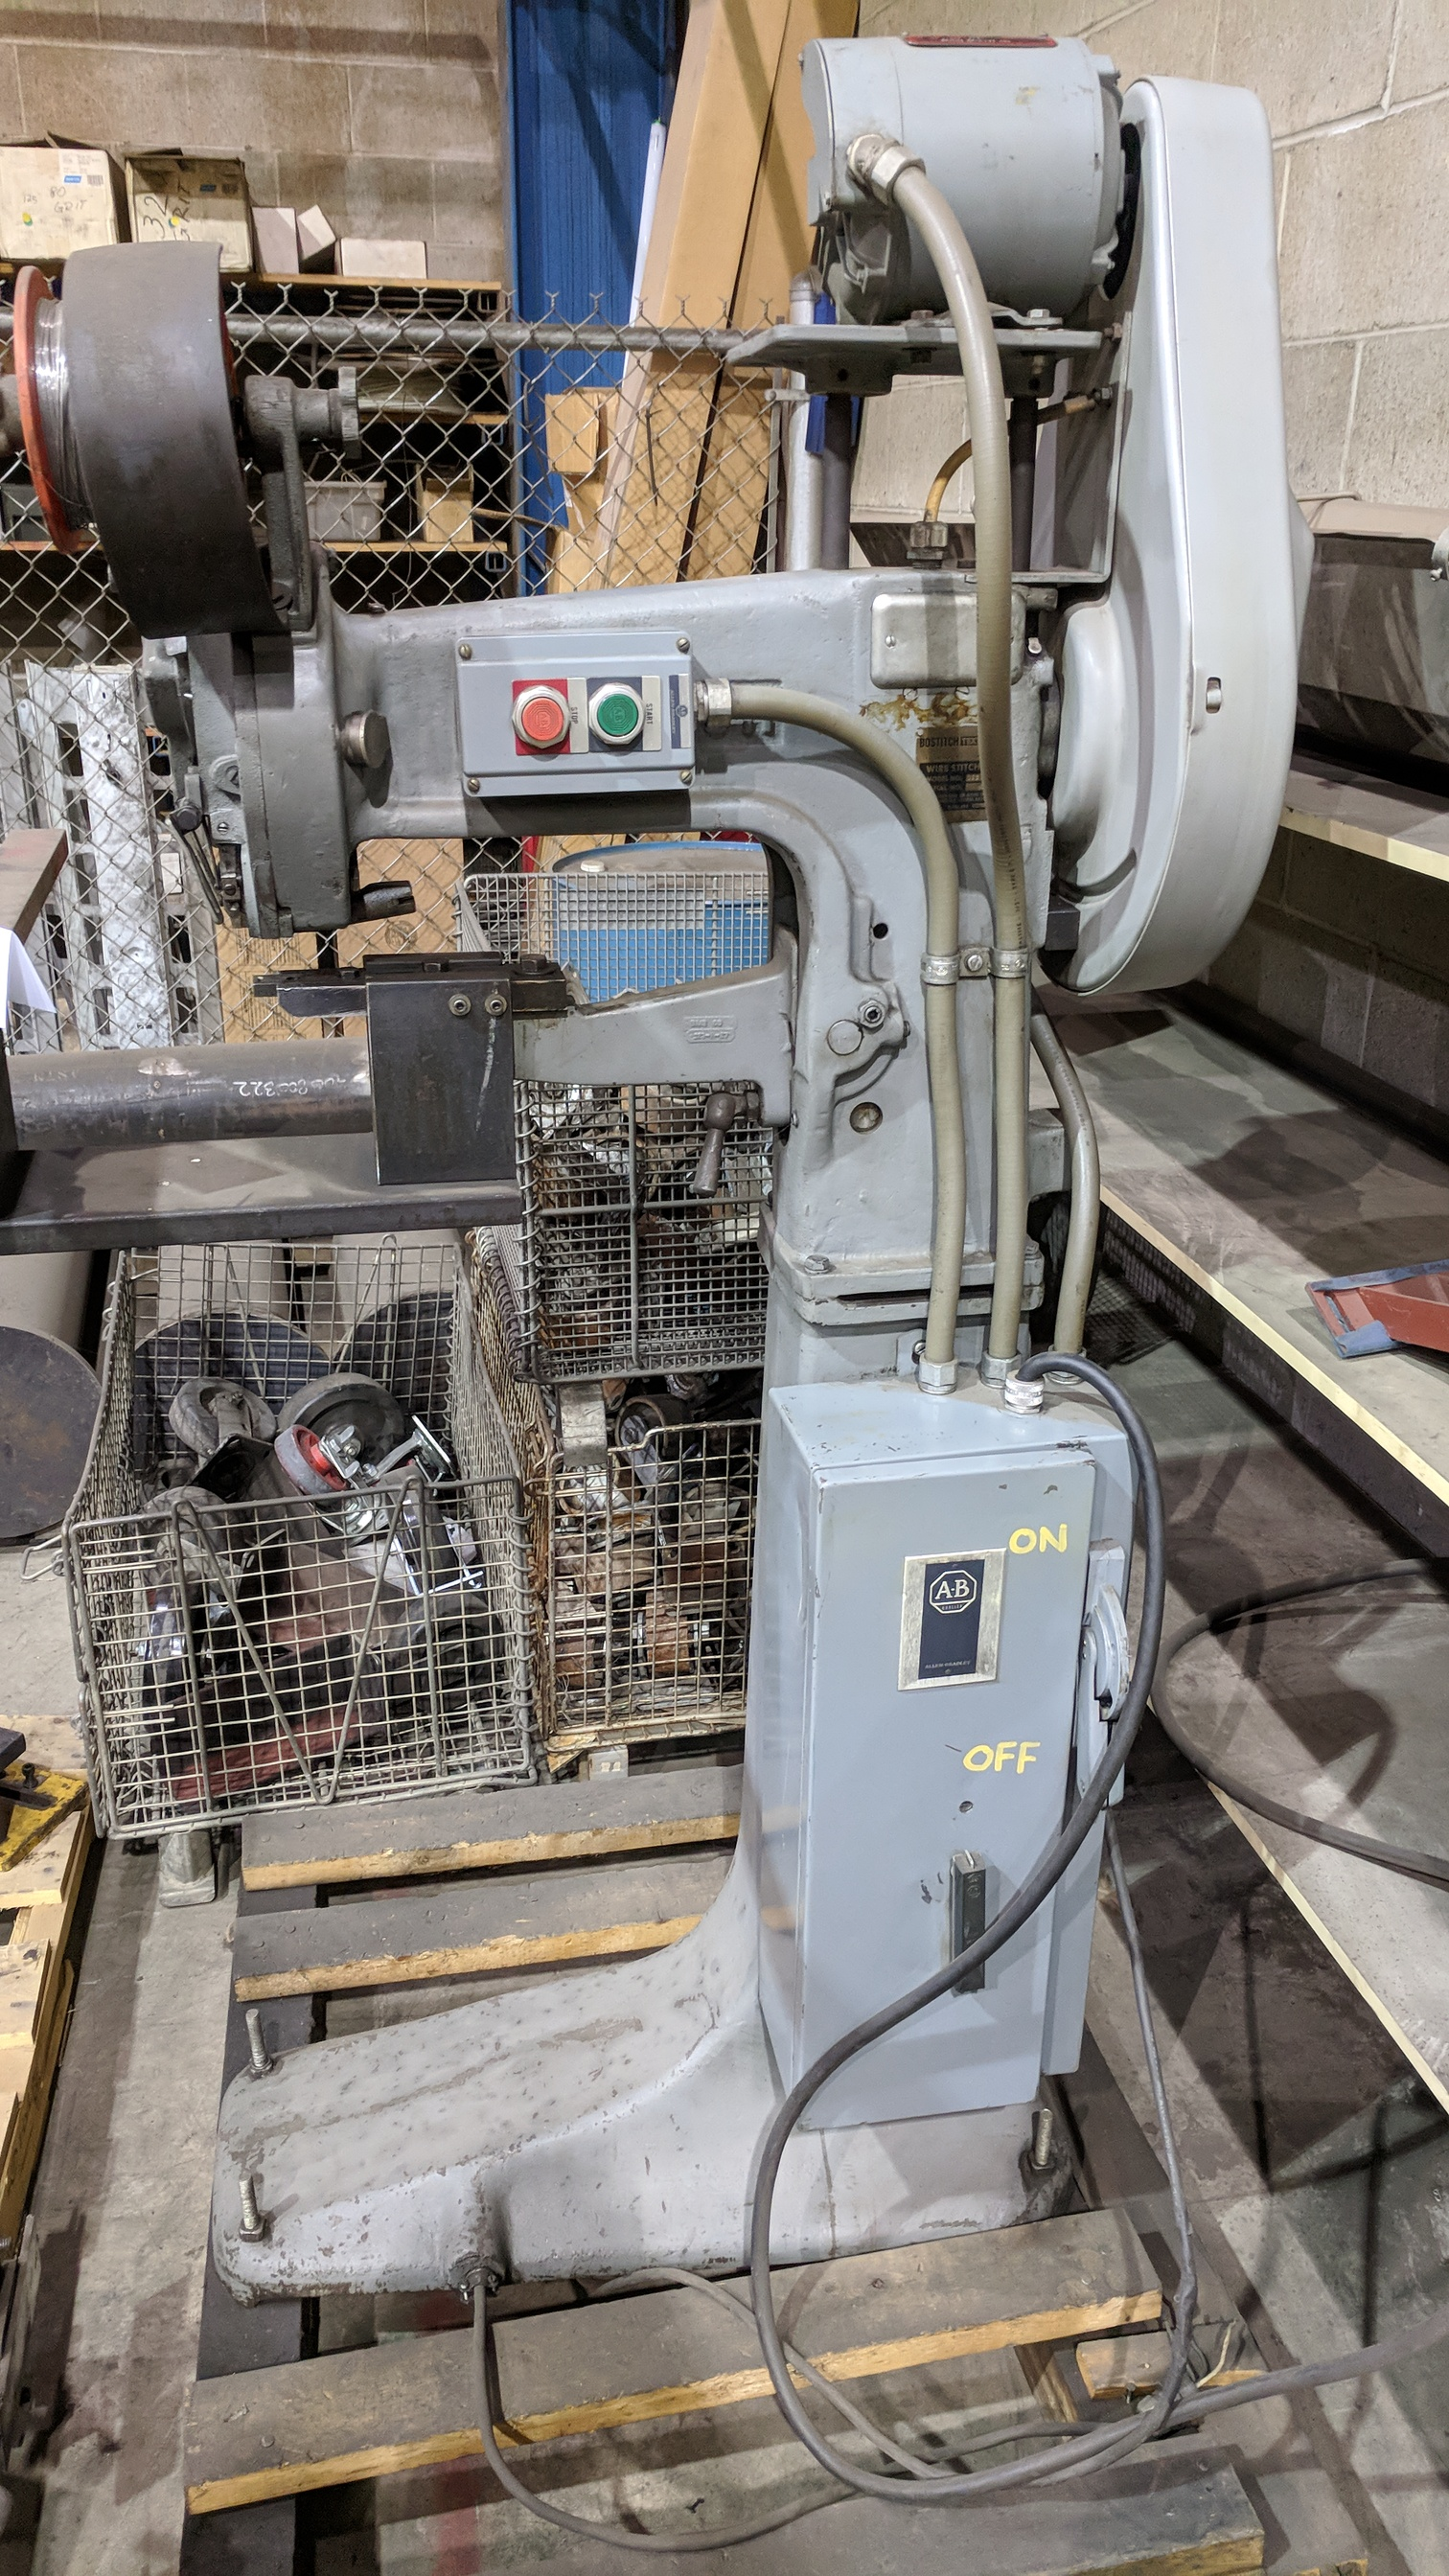 BOSTITCH TEXTRON S13-AW FLOOR TYPE HEAVY DUTY WIRE SADDLE STITCHER, S/N 8315 (CI) - Image 2 of 3